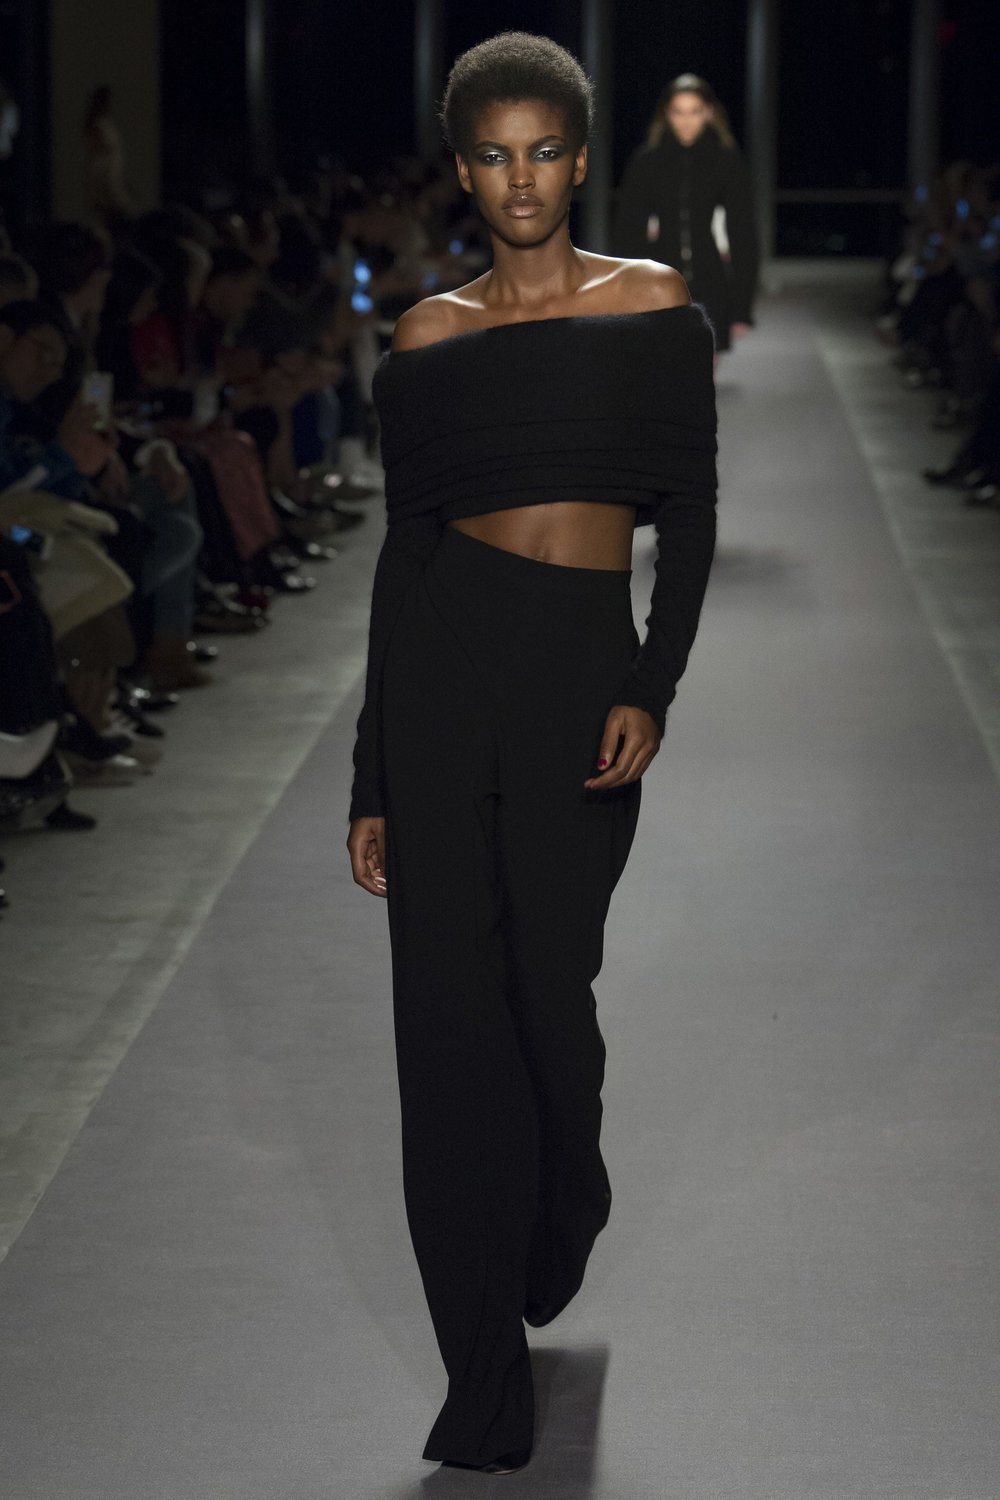 Brandon Maxwell - Vogue.com: Yannis Vlamos / indigital.tv